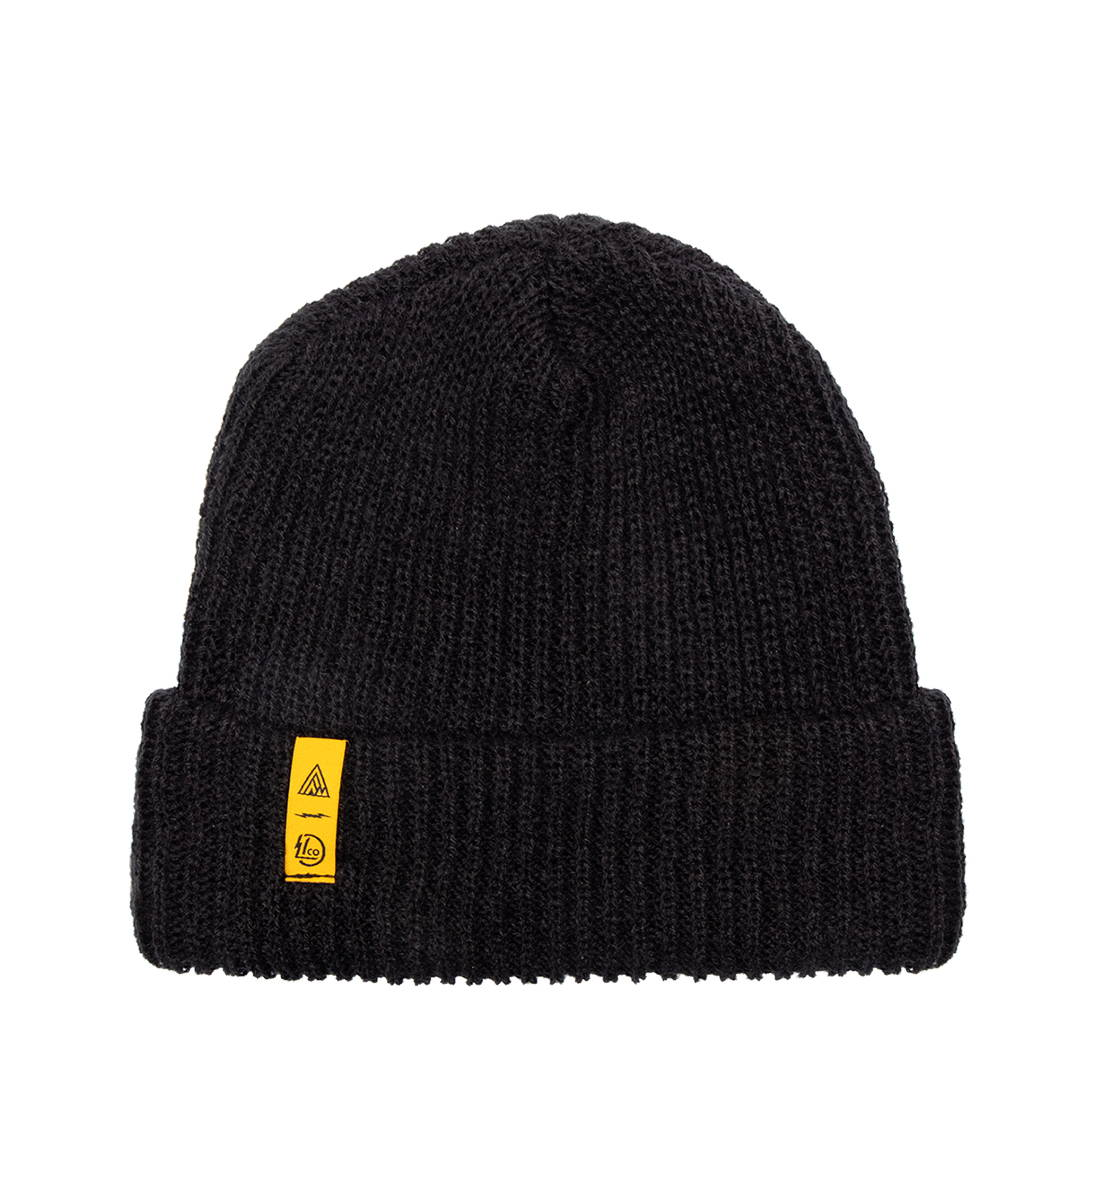 Burnside Beanie - The Great PNW X Lincoln Design Co.